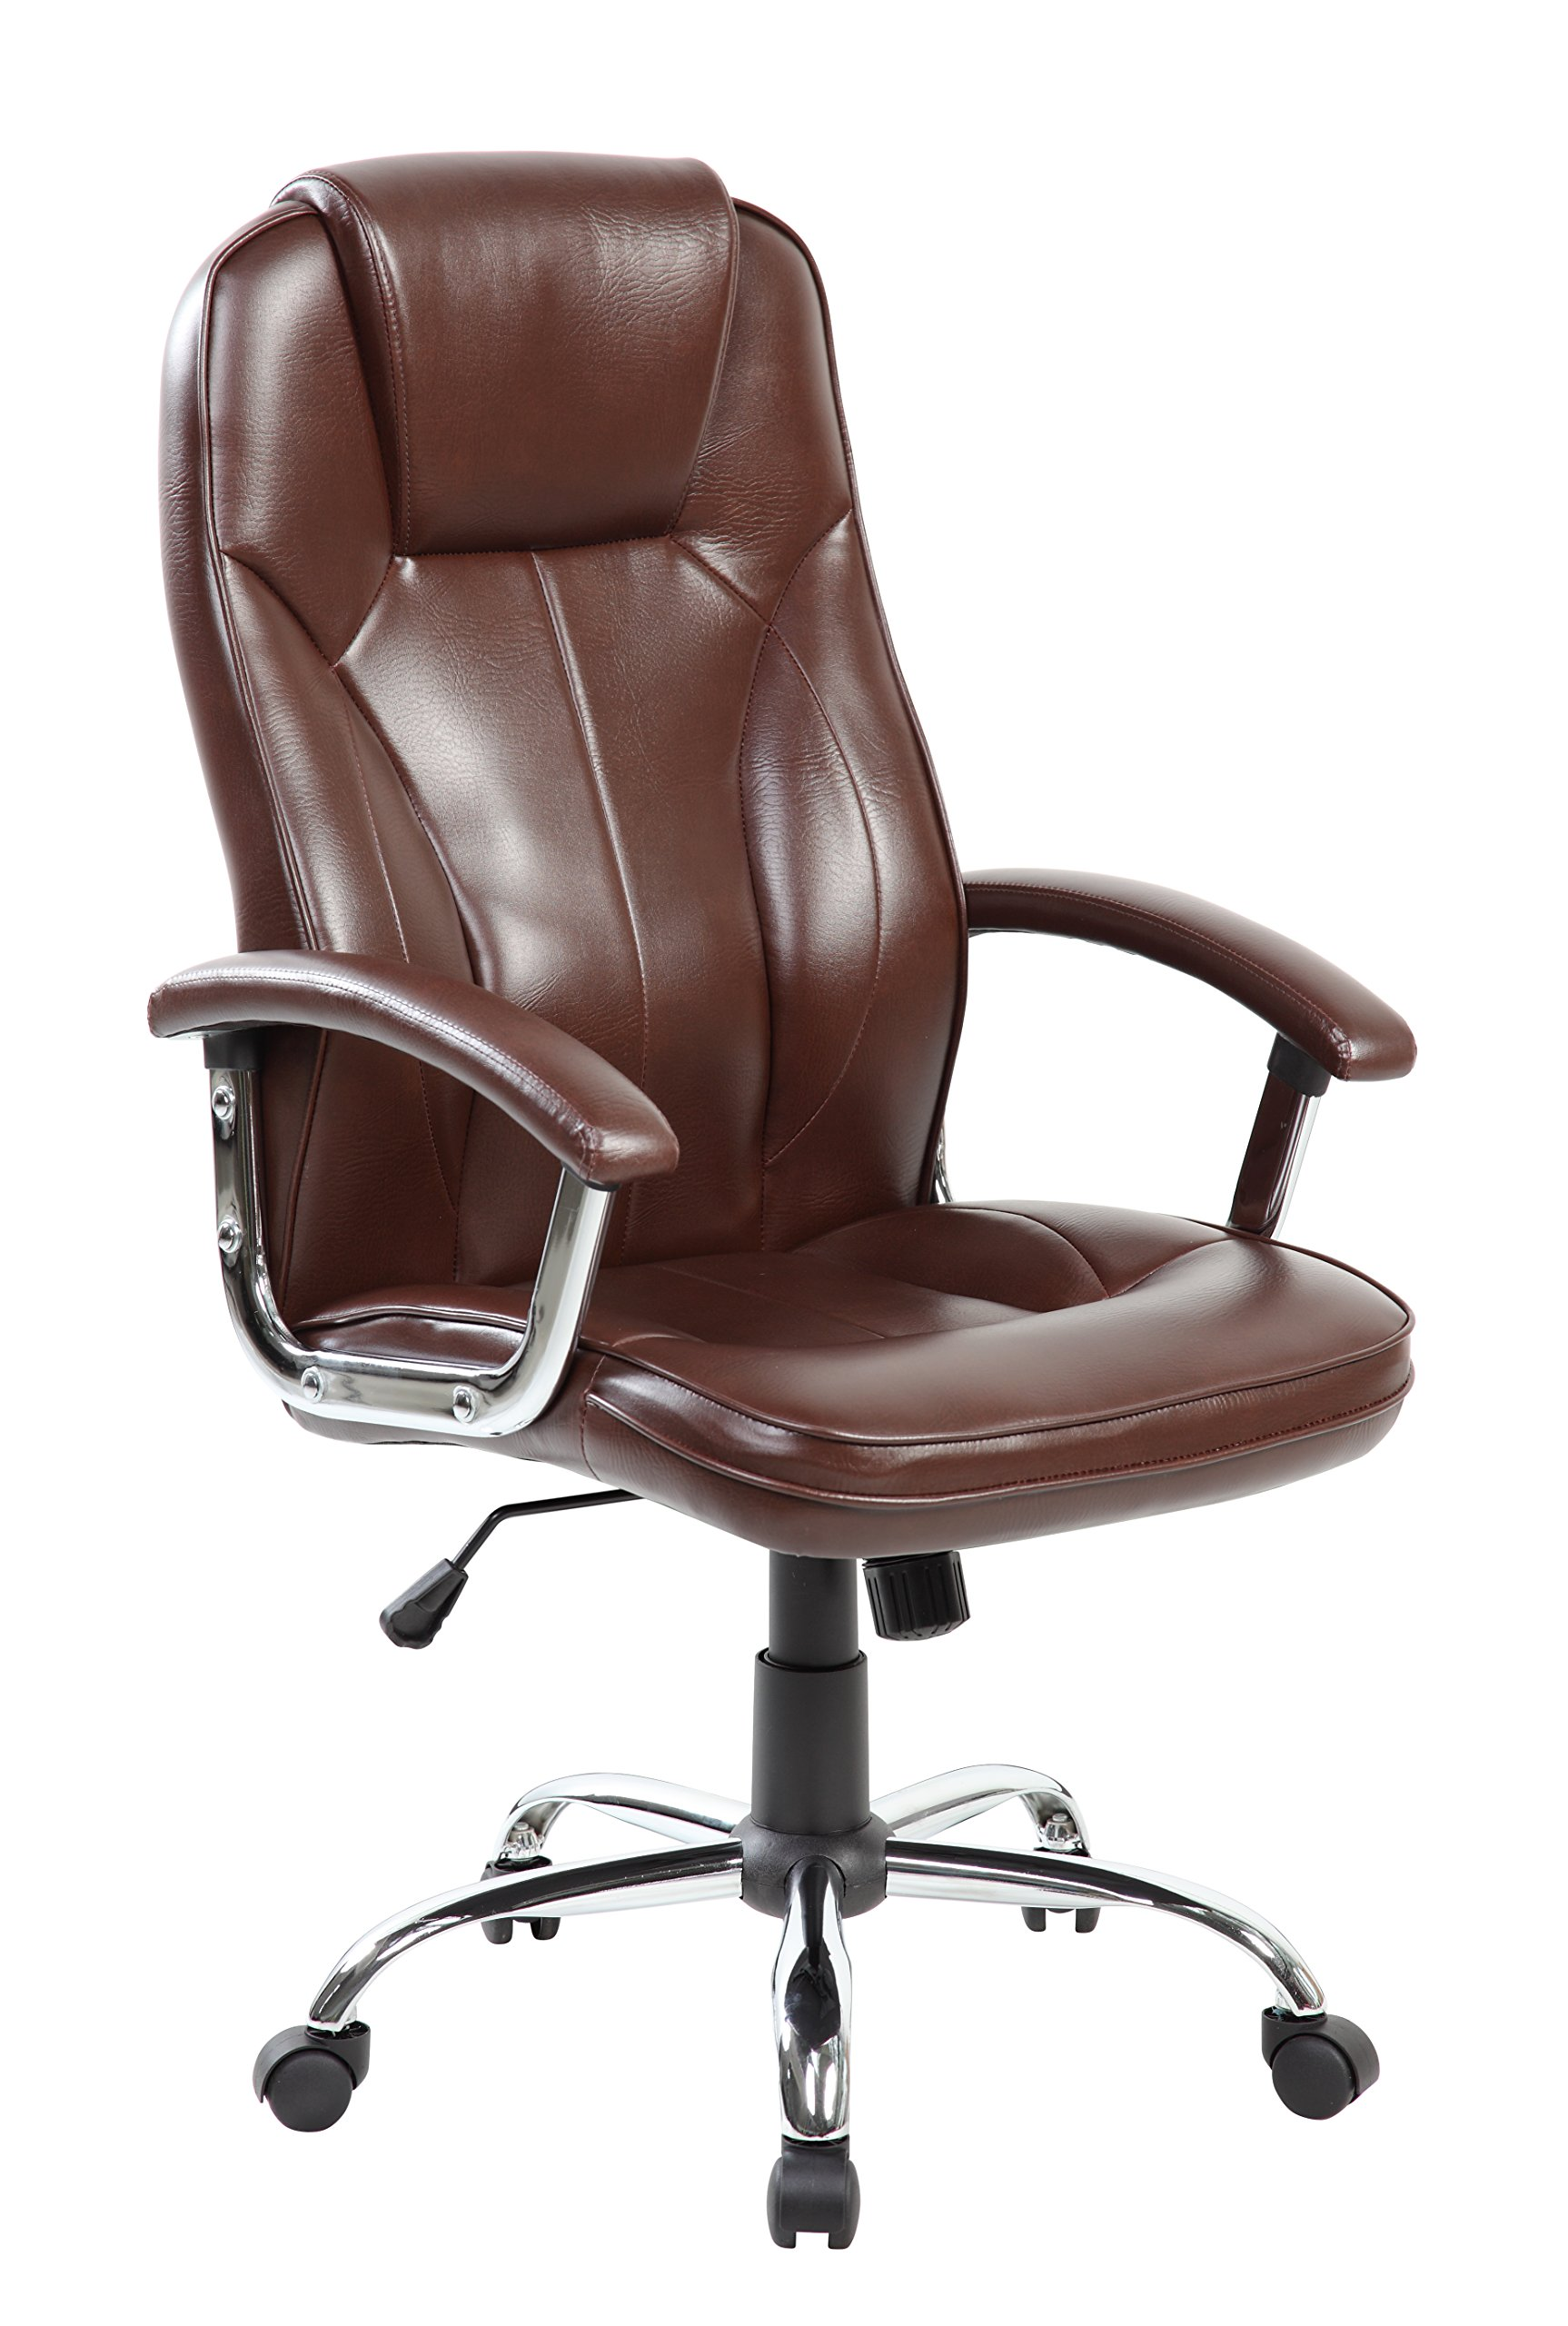 Ergonomic Executive Office Chairs PU Leather Home Office Adjustable Swivel Computer Desk Task Chairs with Arms(ES-9313-Brown